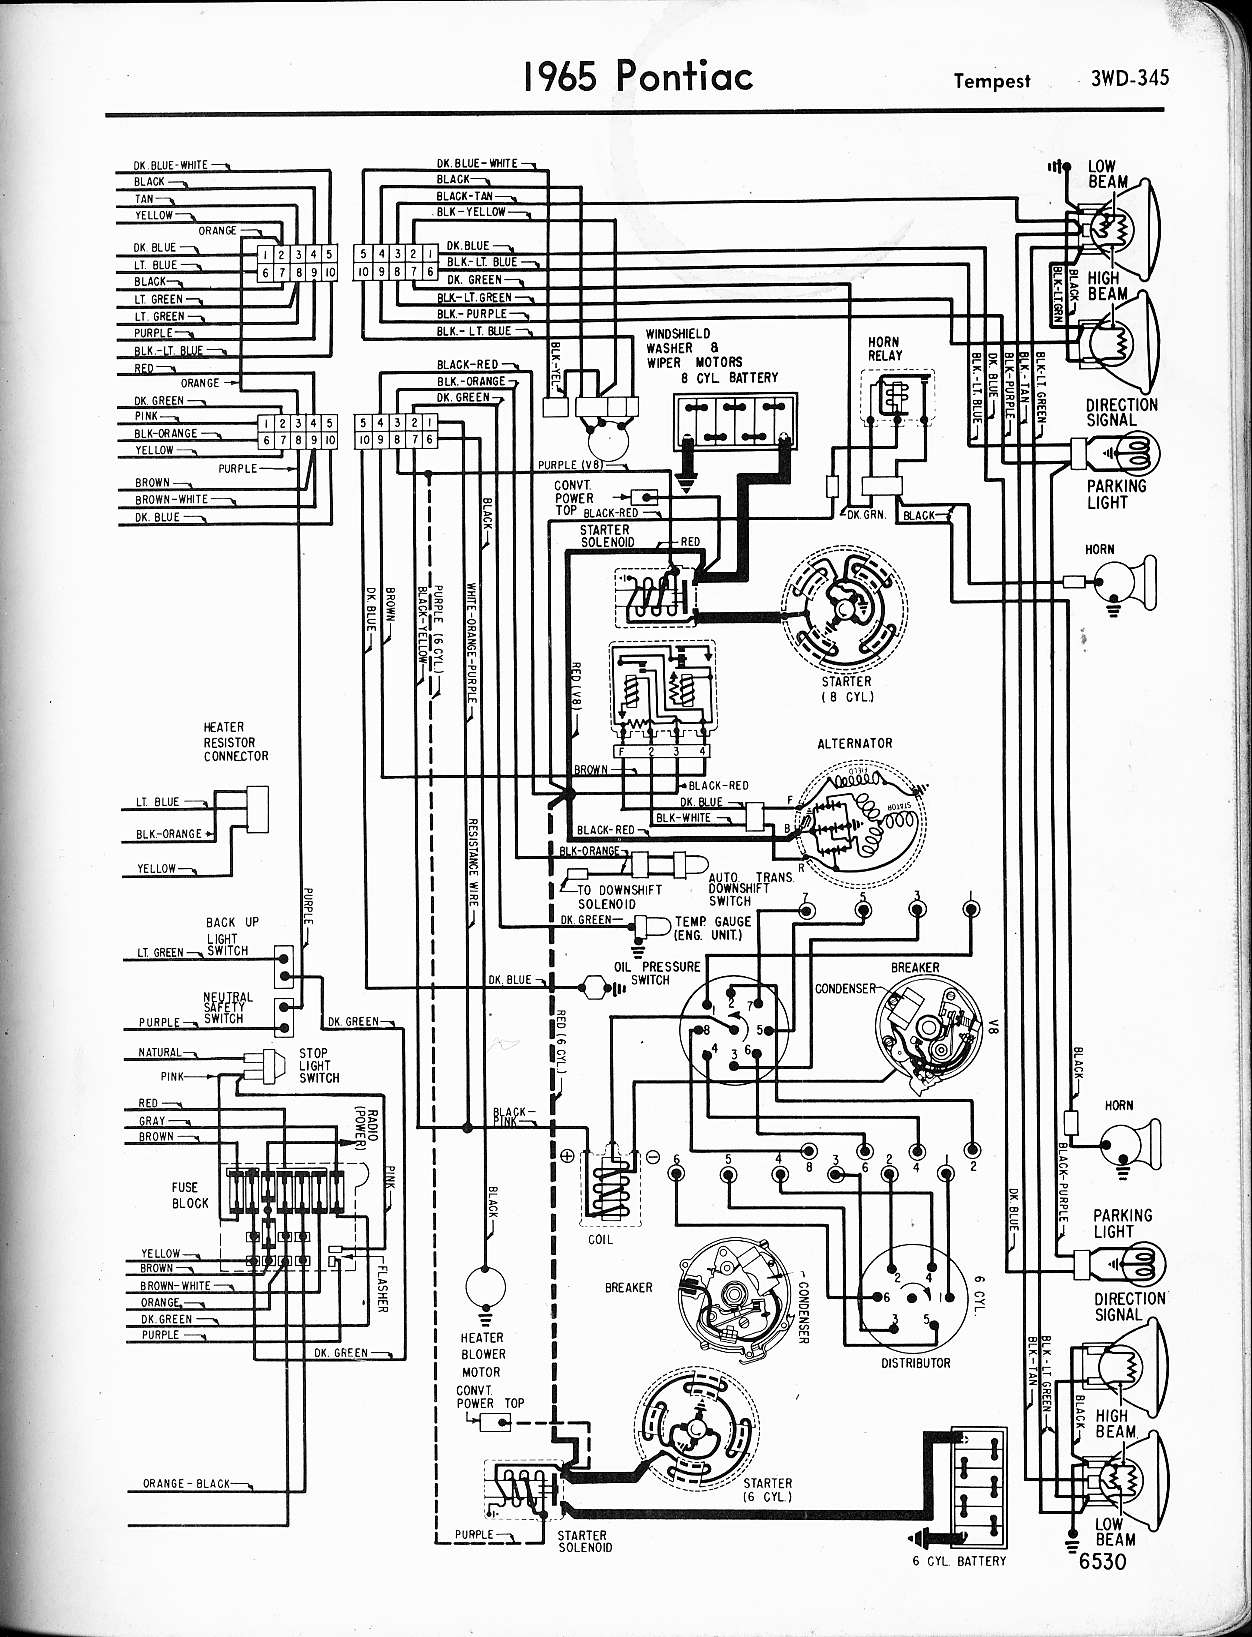 1968 Gto Wiring Diagram Wire Data Schema 1967 Pontiac Tempest Wallace Racing Diagrams Rh Wallaceracing Com 400ci Headlight